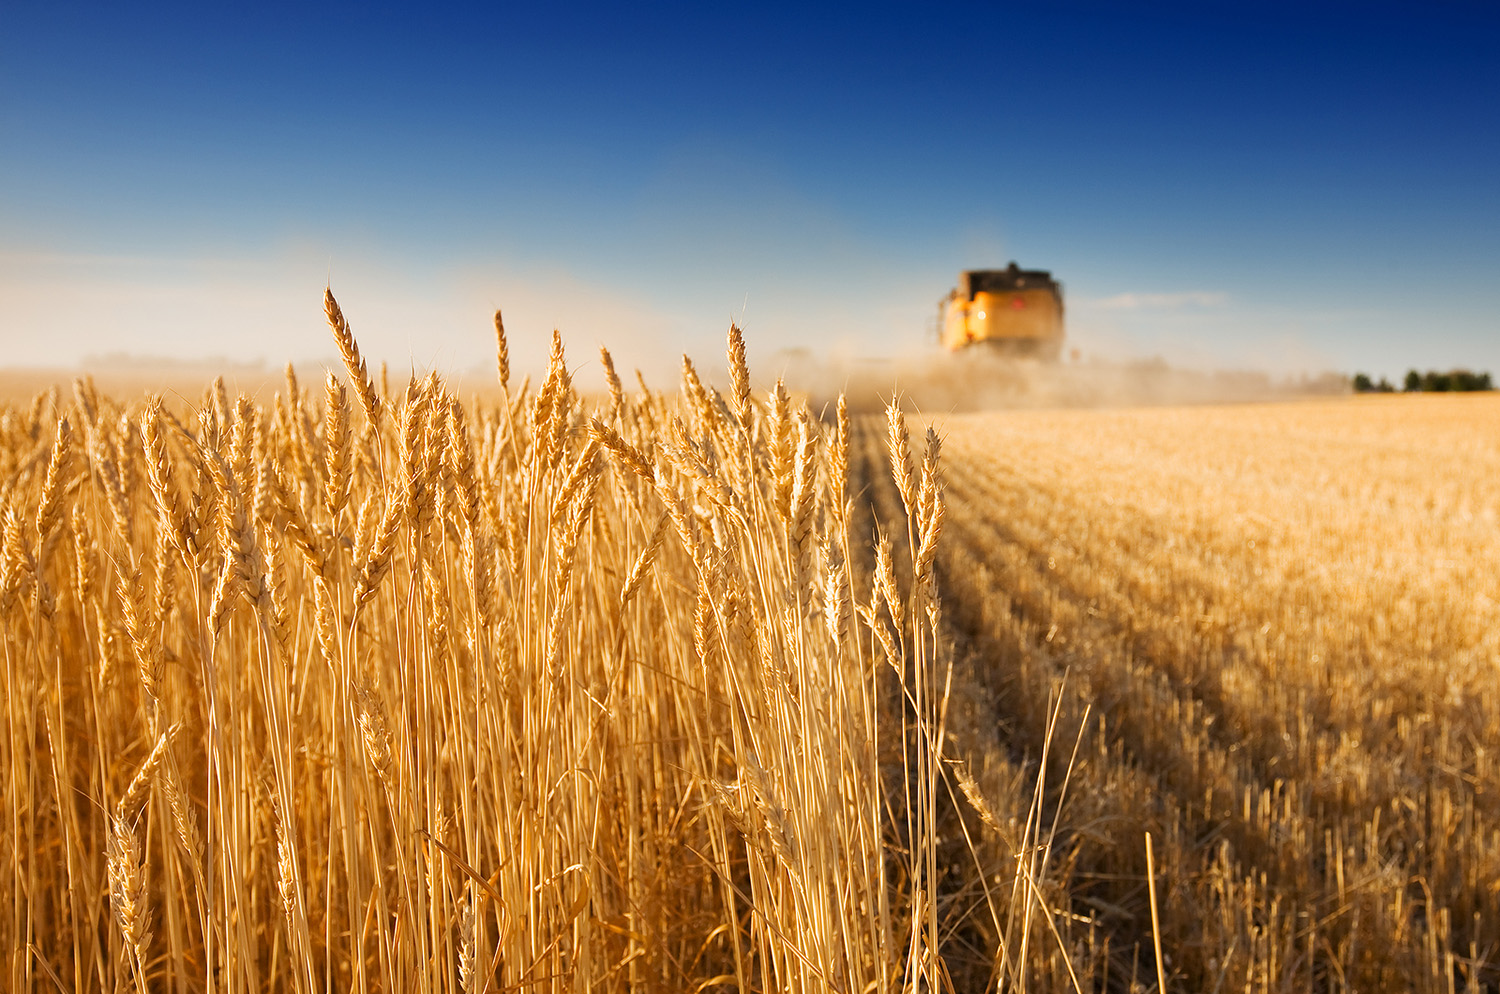 bigstock-Harvest-Time-1946380.jpg